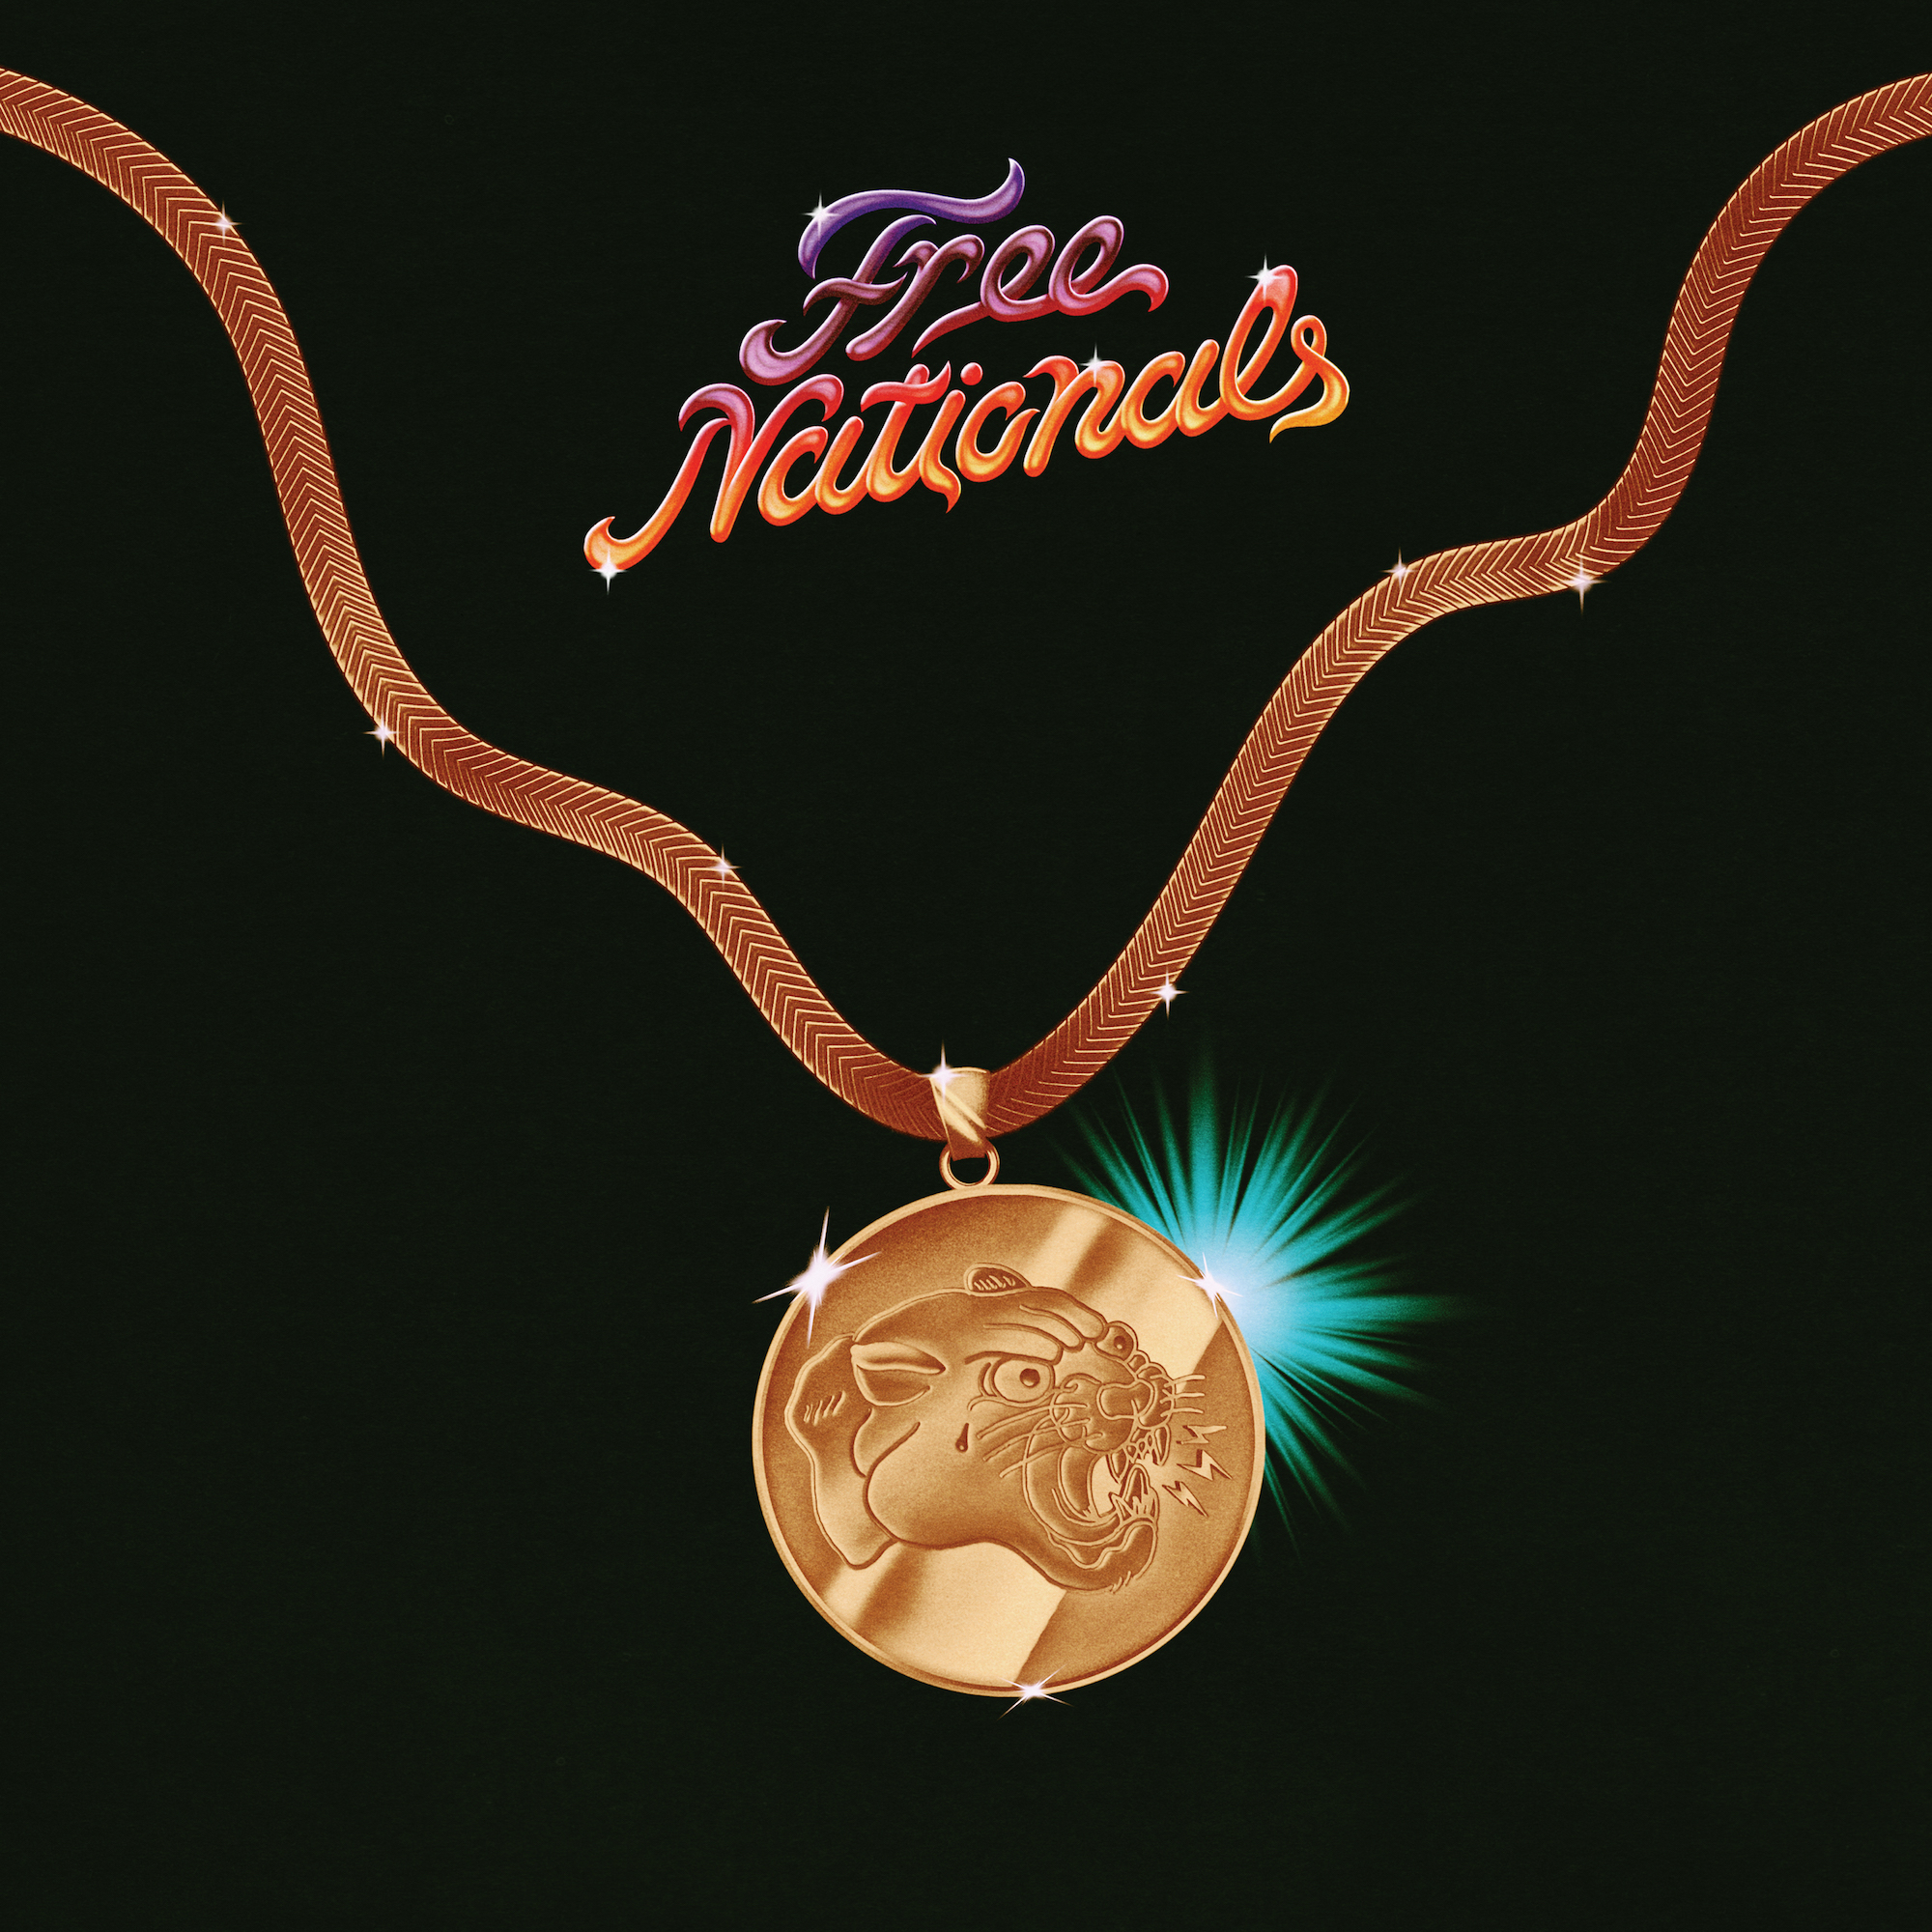 The Free Nationals self-titled debut album cover artwork